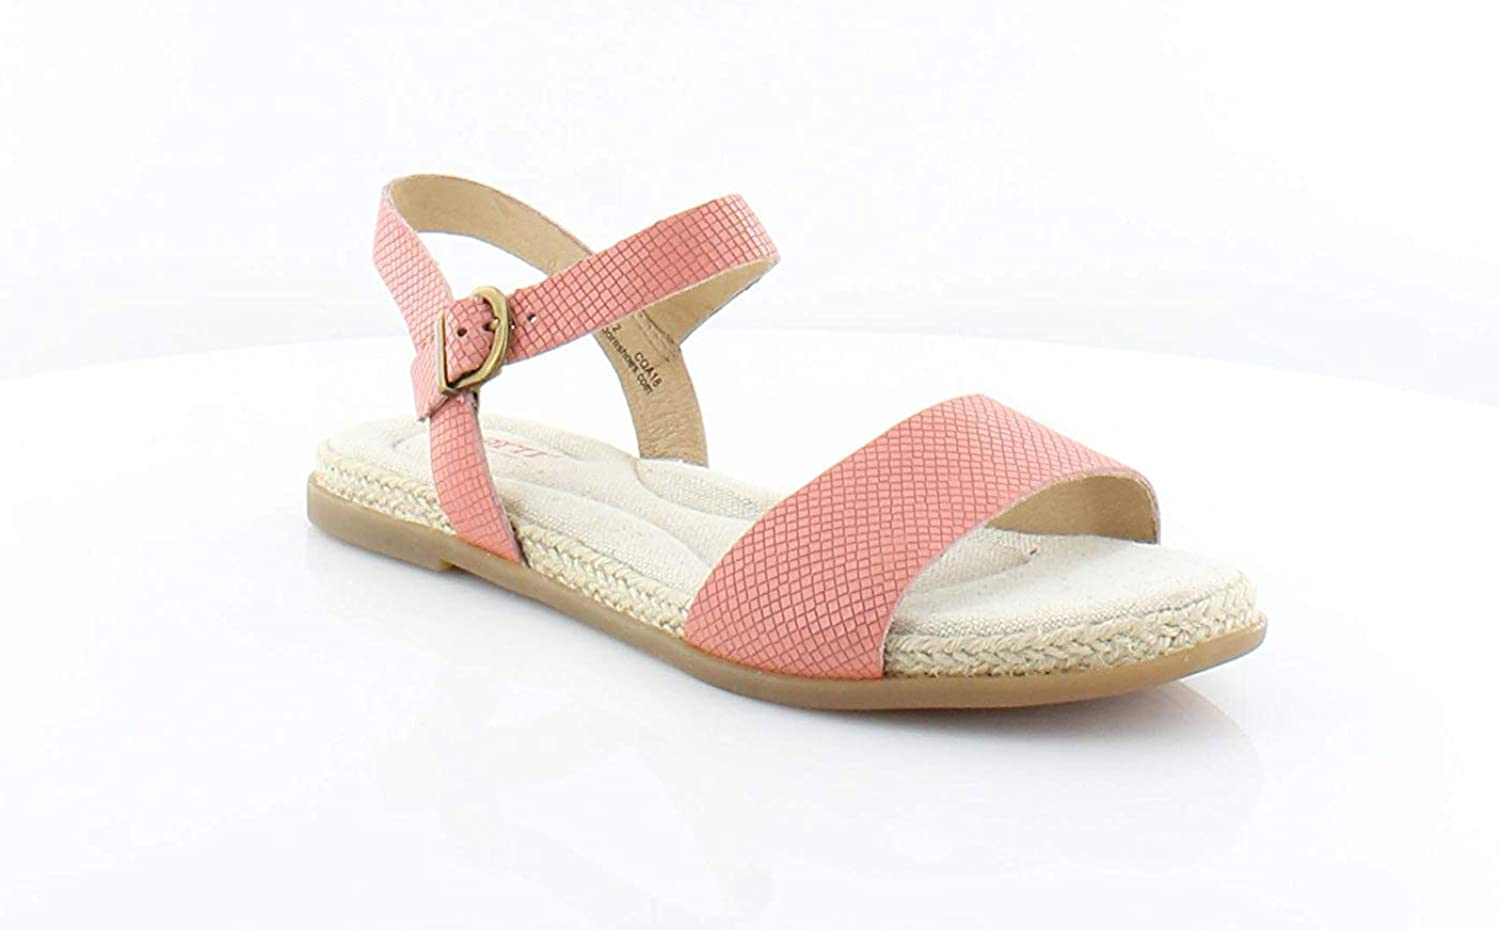 B.O.C. Womens Welch Leather Open Toe Casual Slingback Sandals, Pink, Size 7.0